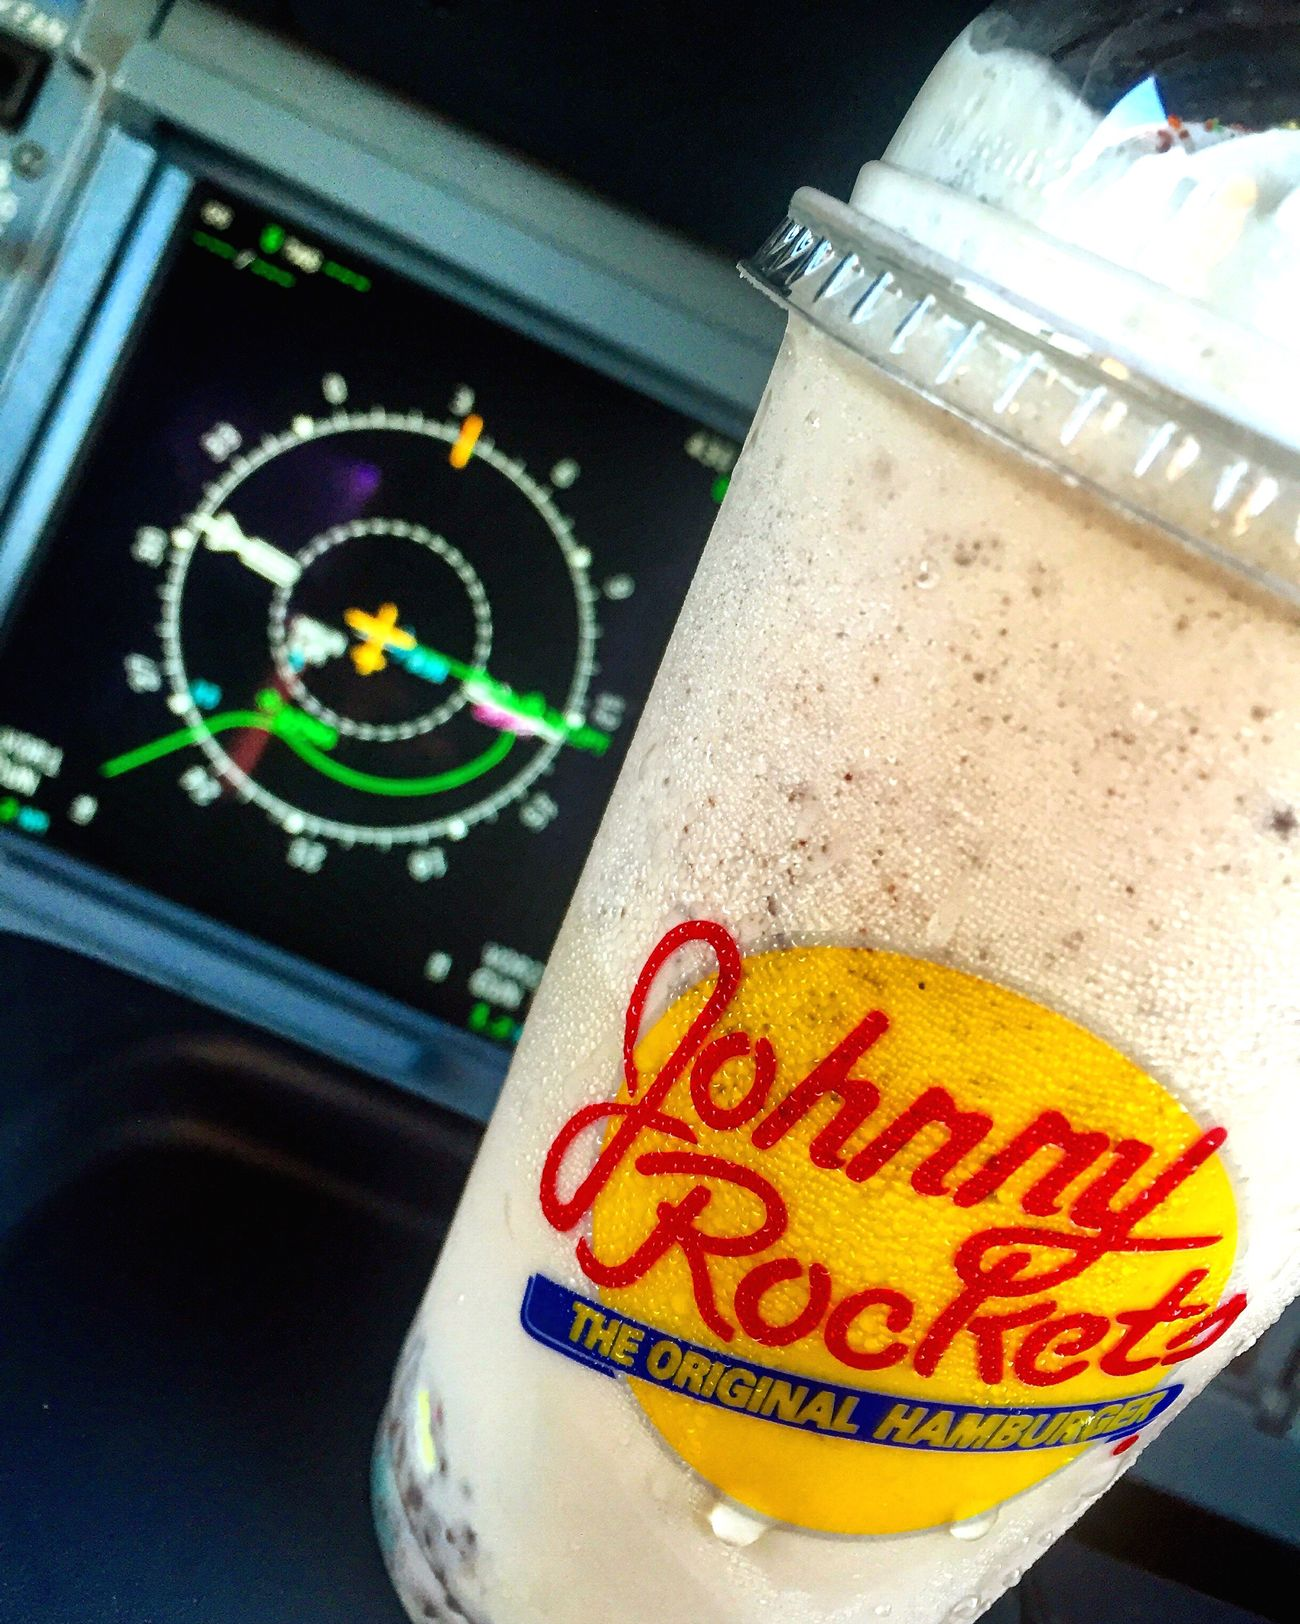 Jhonnyrockets Snack Time! Flying Flying High Working Working Hard Food Delicious Hungry Milkshake Milkshake♥ Love To Take Photos ❤ Pilotlife Crew Crewlife Photooftheday Photography